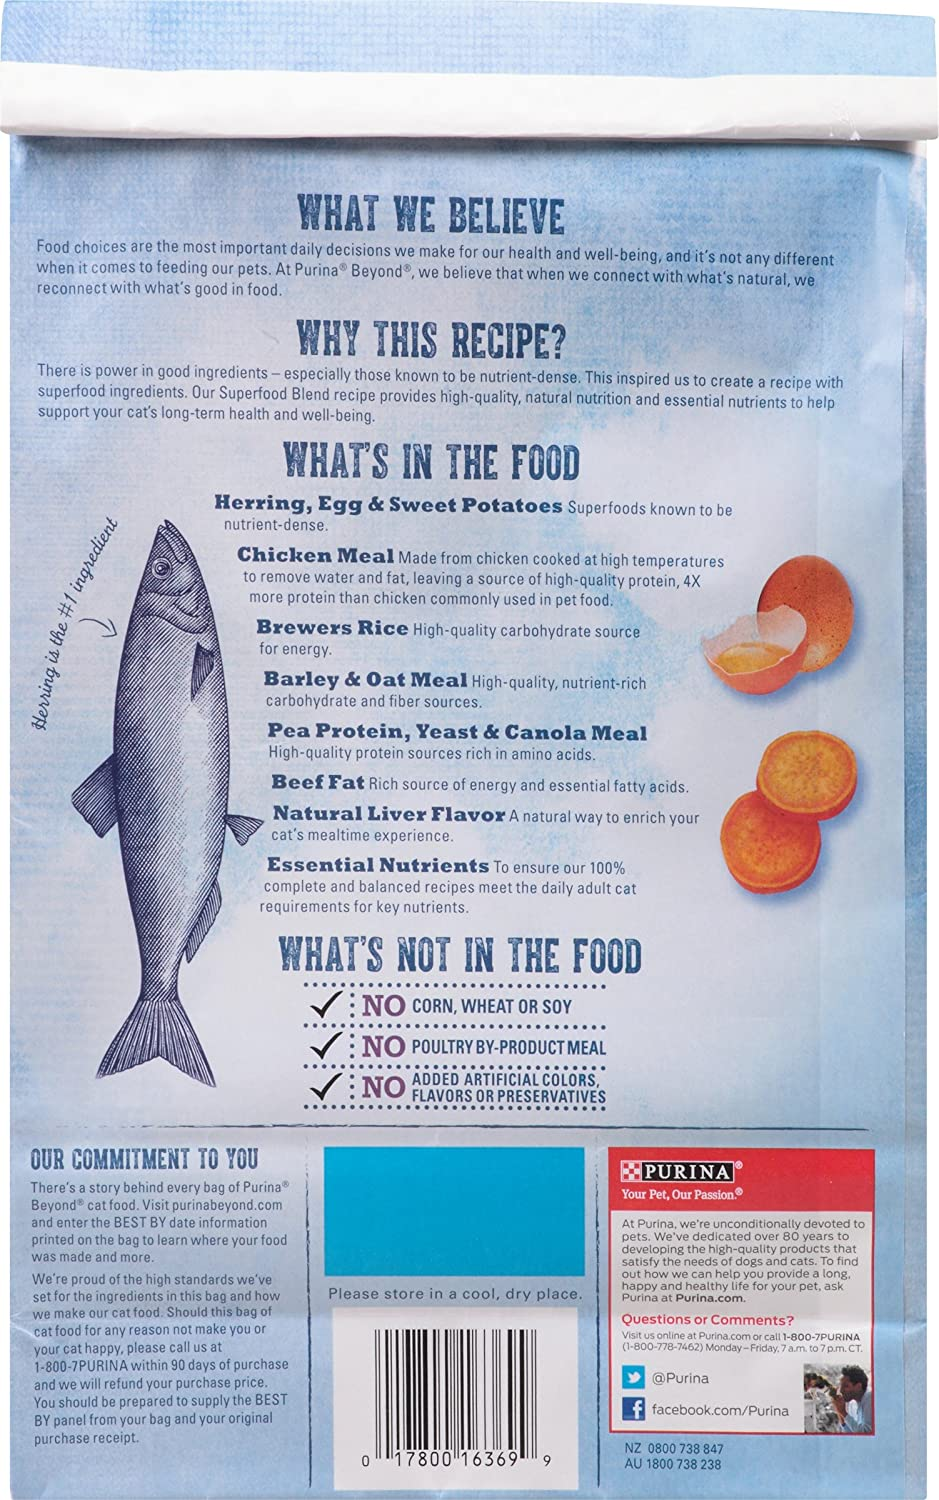 Amazon purina beyond natural dry cat food superfood blend amazon purina beyond natural dry cat food superfood blend herring egg and sweet potato recipe 3 pound bag pack of 1 pet supplies forumfinder Choice Image